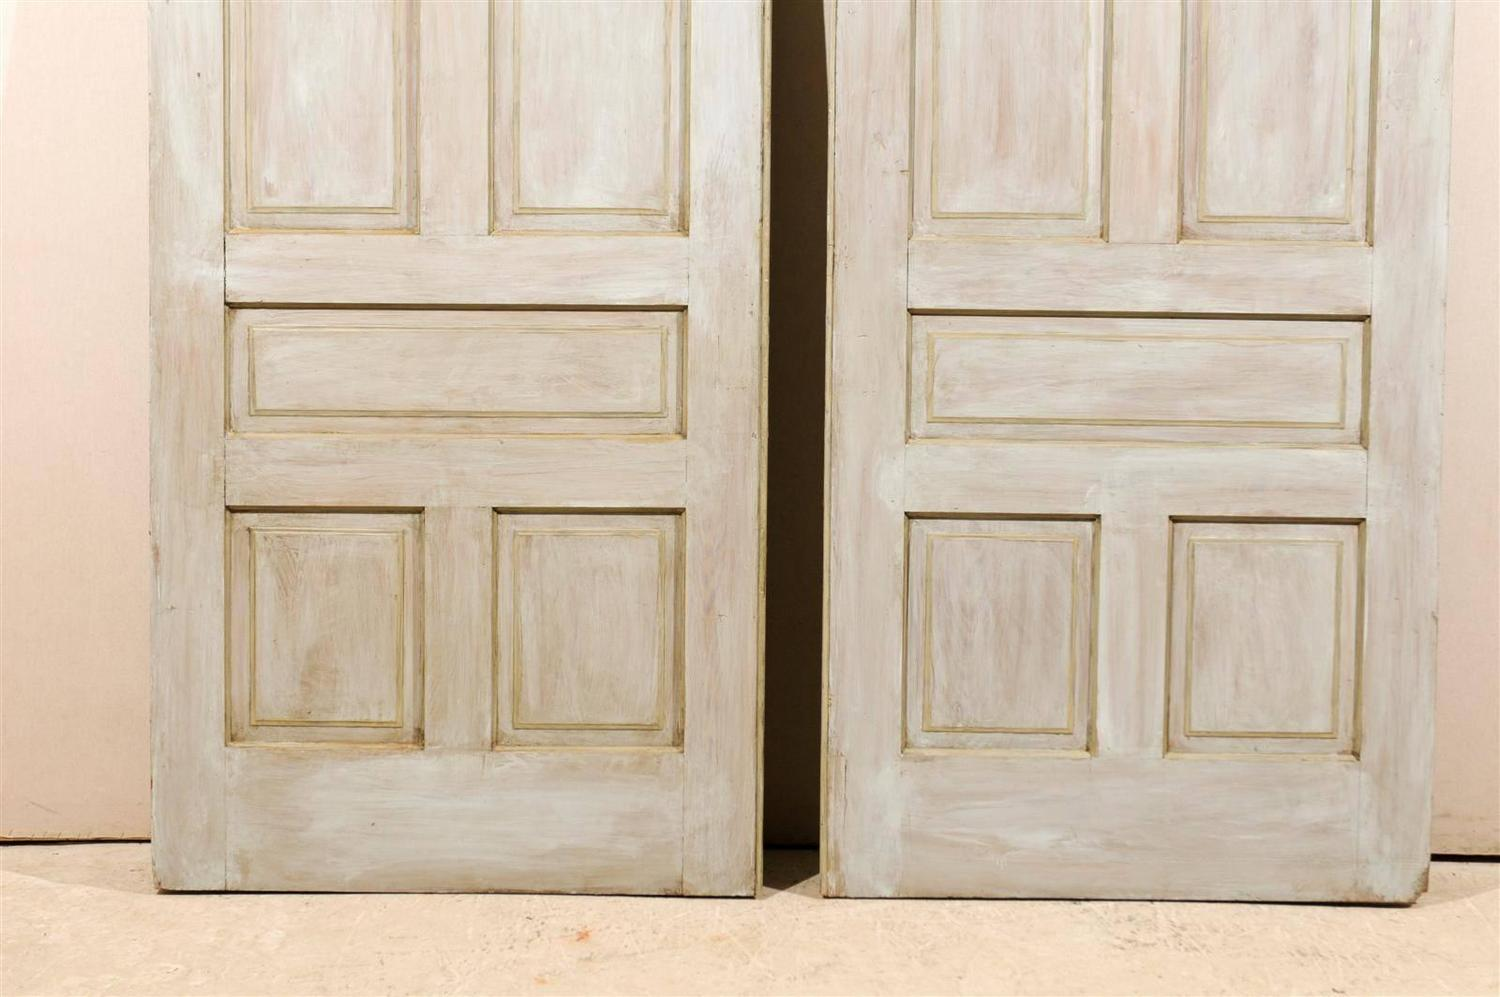 Pair Of Early 20th Century Painted Wood Pocket Doors For